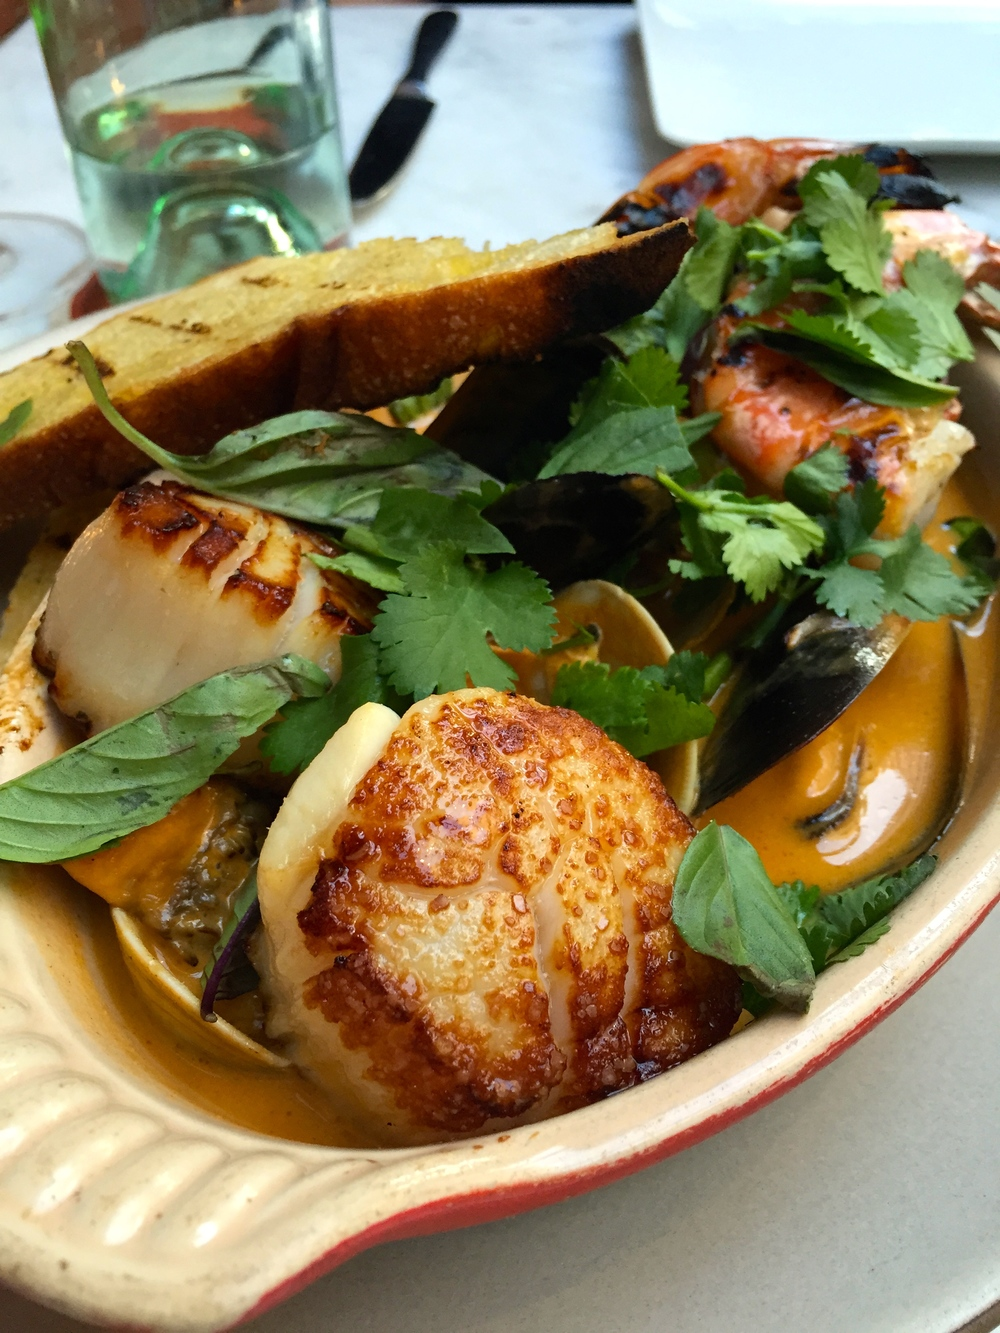 Shellfish pot with scallops, clams, mussels, shrimp, maitake mushrooms and curry.